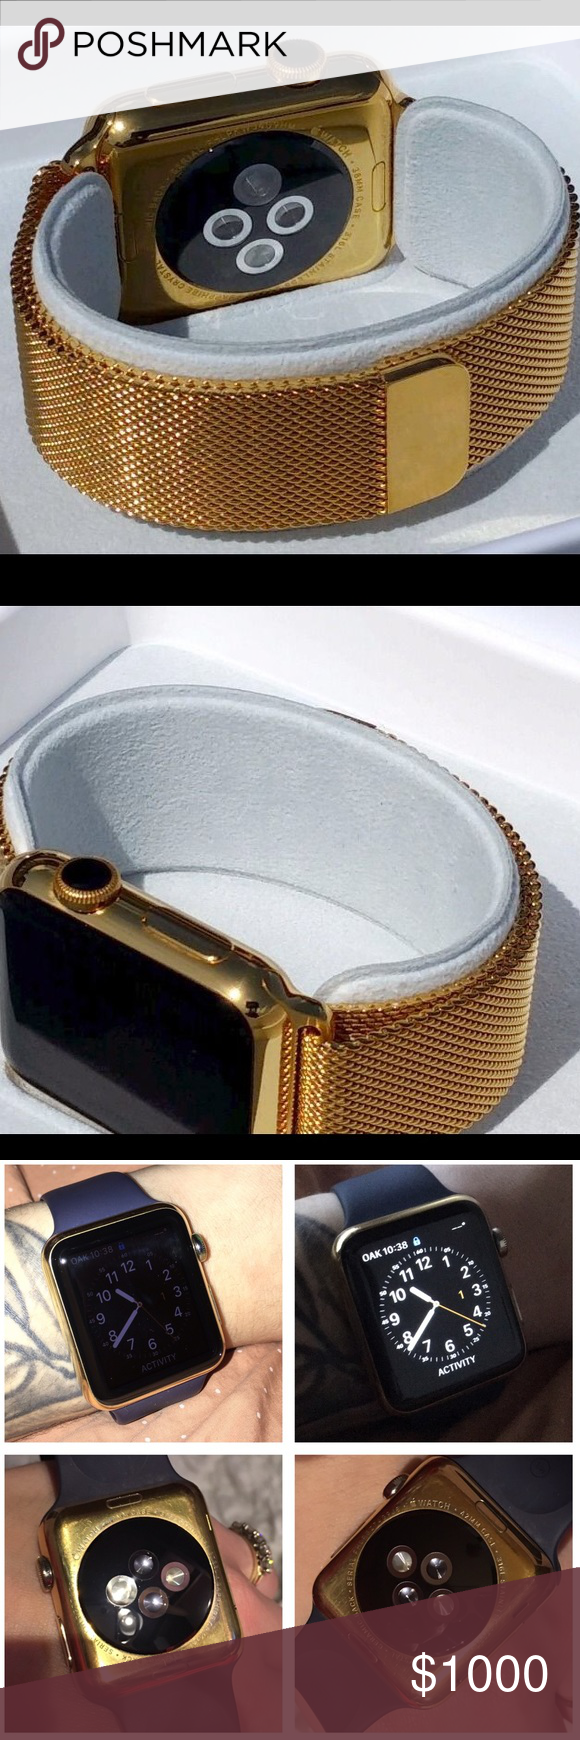 24k Gold Plated 42mm Apple Watch 8/10 condition 24k Gold